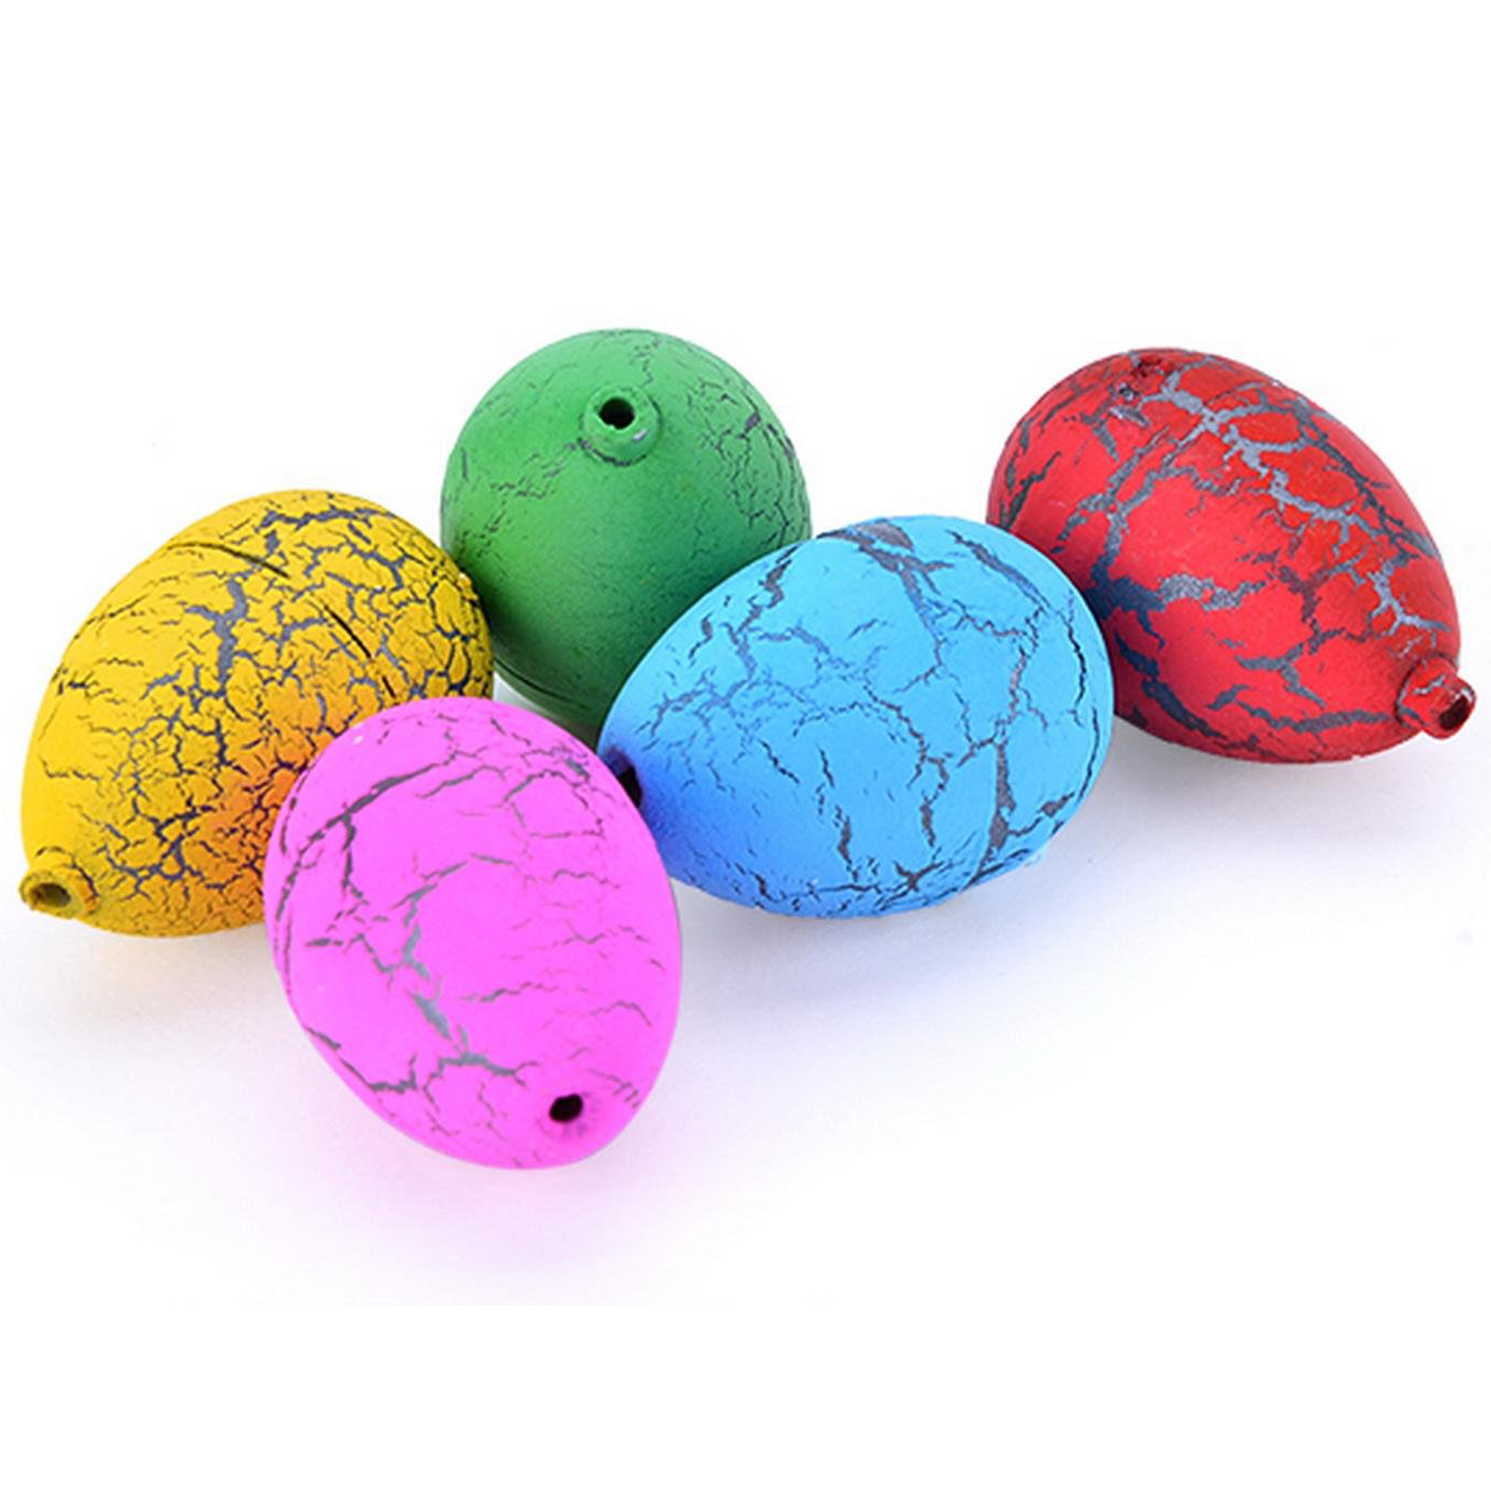 60PCS Hatching Growing Dinosaur Dino Eggs Add Water Magic Cute Children Toy Colorful